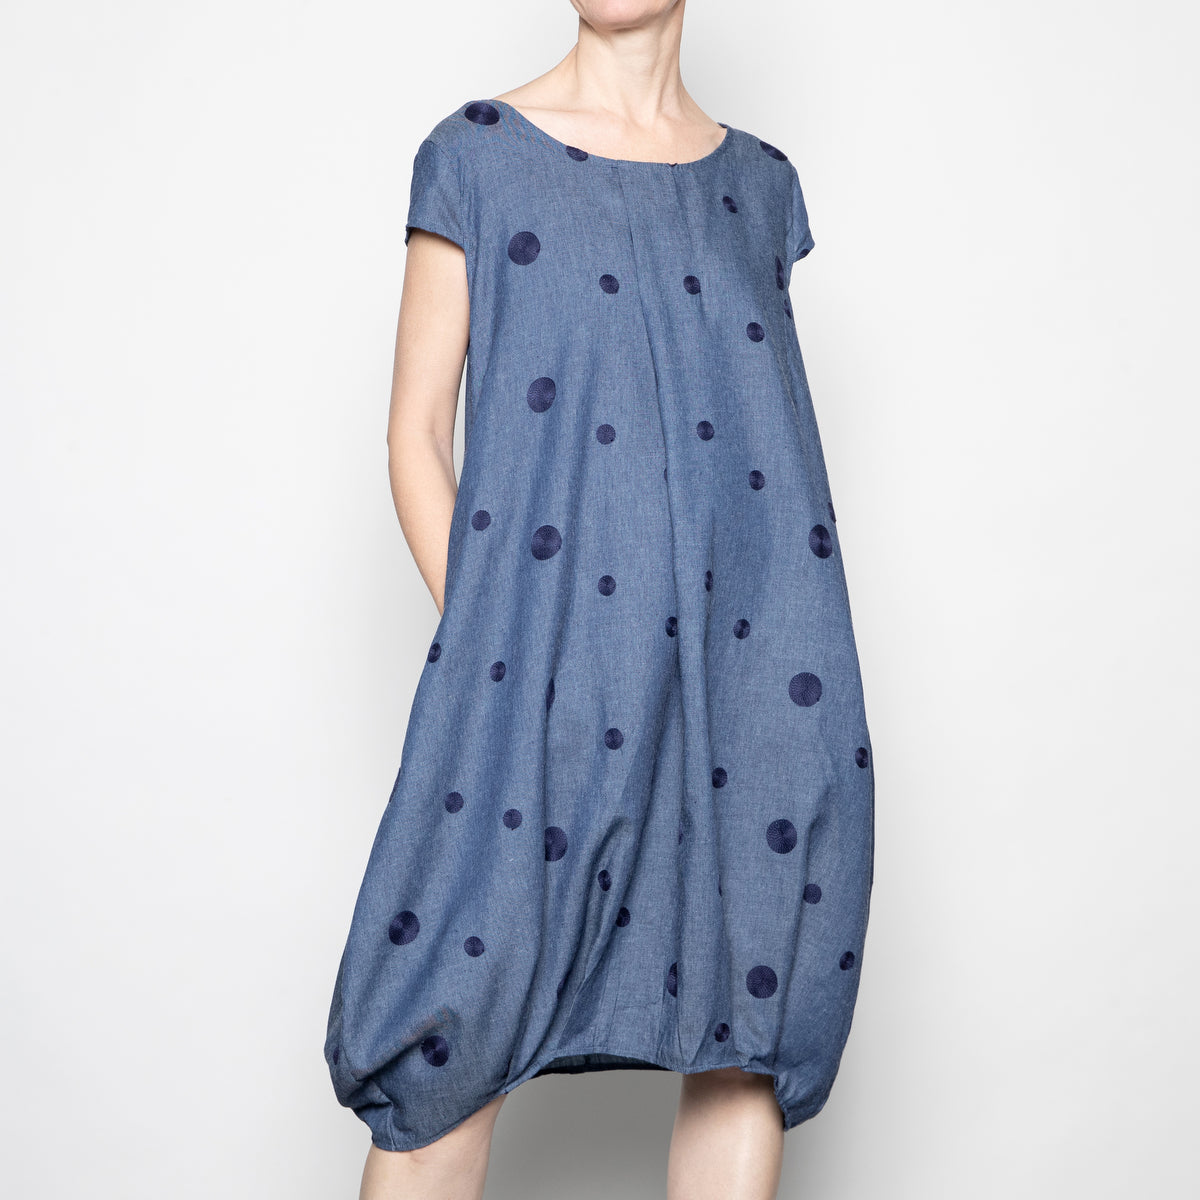 Bella Blue Dotted Dress